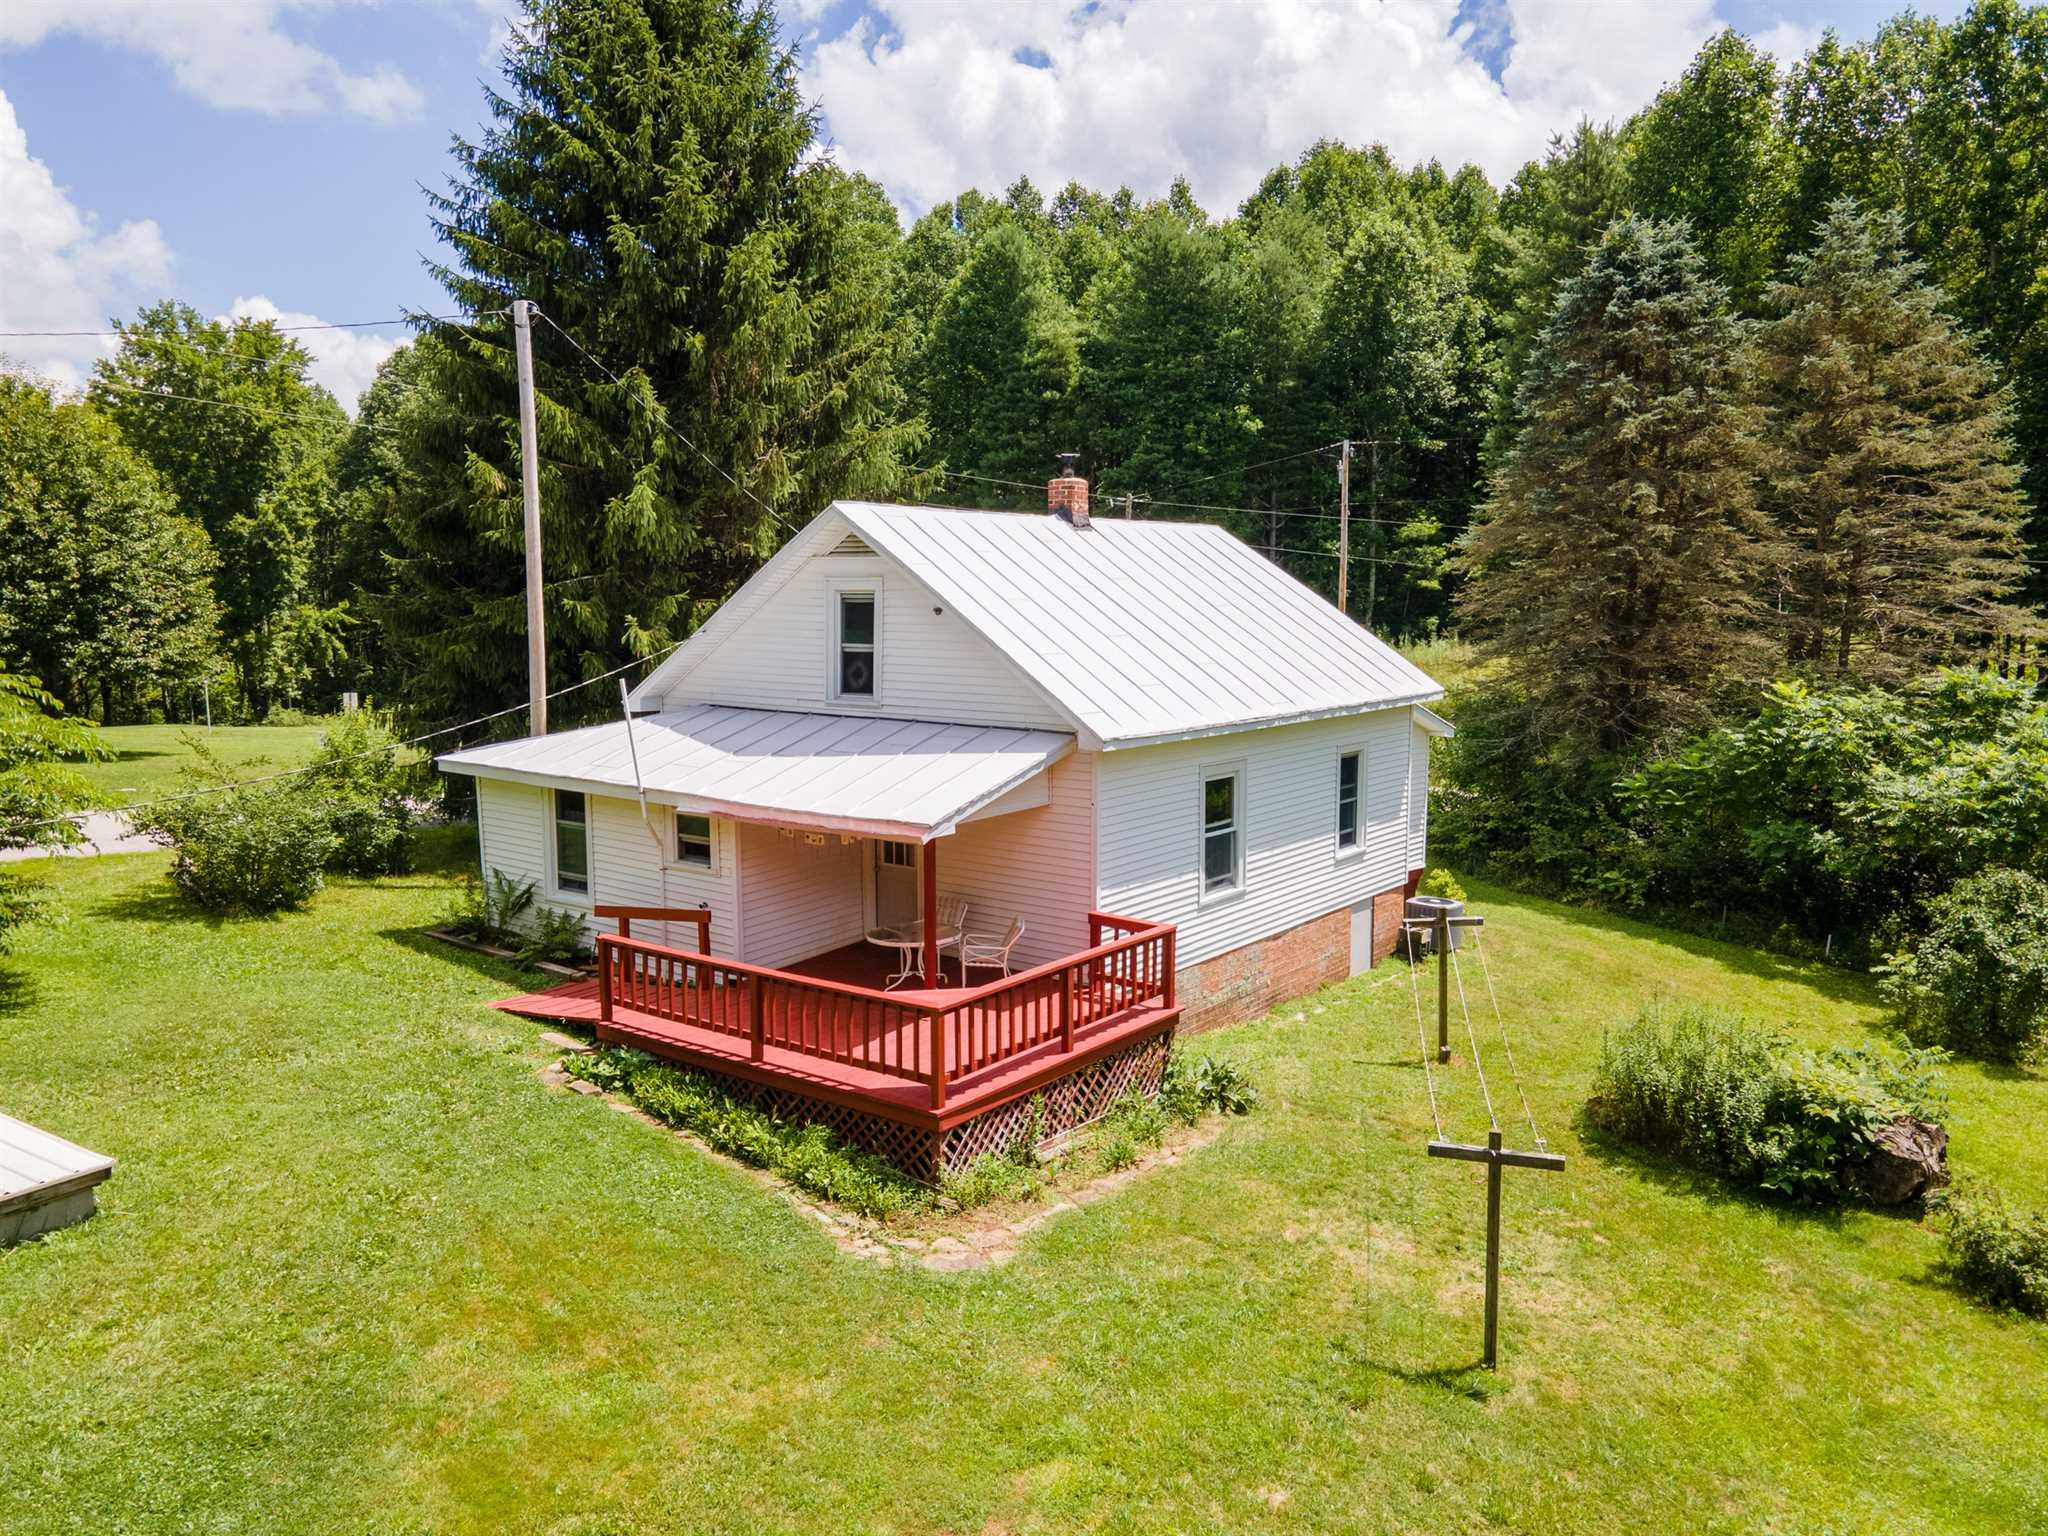 Welcome to Lilac Corner! This charming 3 bedroom, 1 bath, well insulated, Floyd County farmhouse with a spacious 10,000 sq ft fenced labyrinth garden with established, organically grown perennial medicinal plants, flowers, asparagus, fruit trees & room to add more. The property has a couple small field areas & outbuildings for farm animals & workshop.  One of the structures has a green house built onto the South side creating a great area to start seeds to prep for the season & hang out in the sunshine in the winter. Items completed in the past 5 years include: new Heat Pump with A/C, well pump & pressure tank, water supply line to house, hot water heater, interior supply plumbing, wood stove, stainless steel chimney liner, new marine coating on roof 2020. Located 1.4 mile from the Parkway close to Mabry Mill & Floyd Fest, 2.5 miles from Buffalo Mountain Preserve and in close proximity to wineries. Schedule an appointment to see this beauty for yourself!